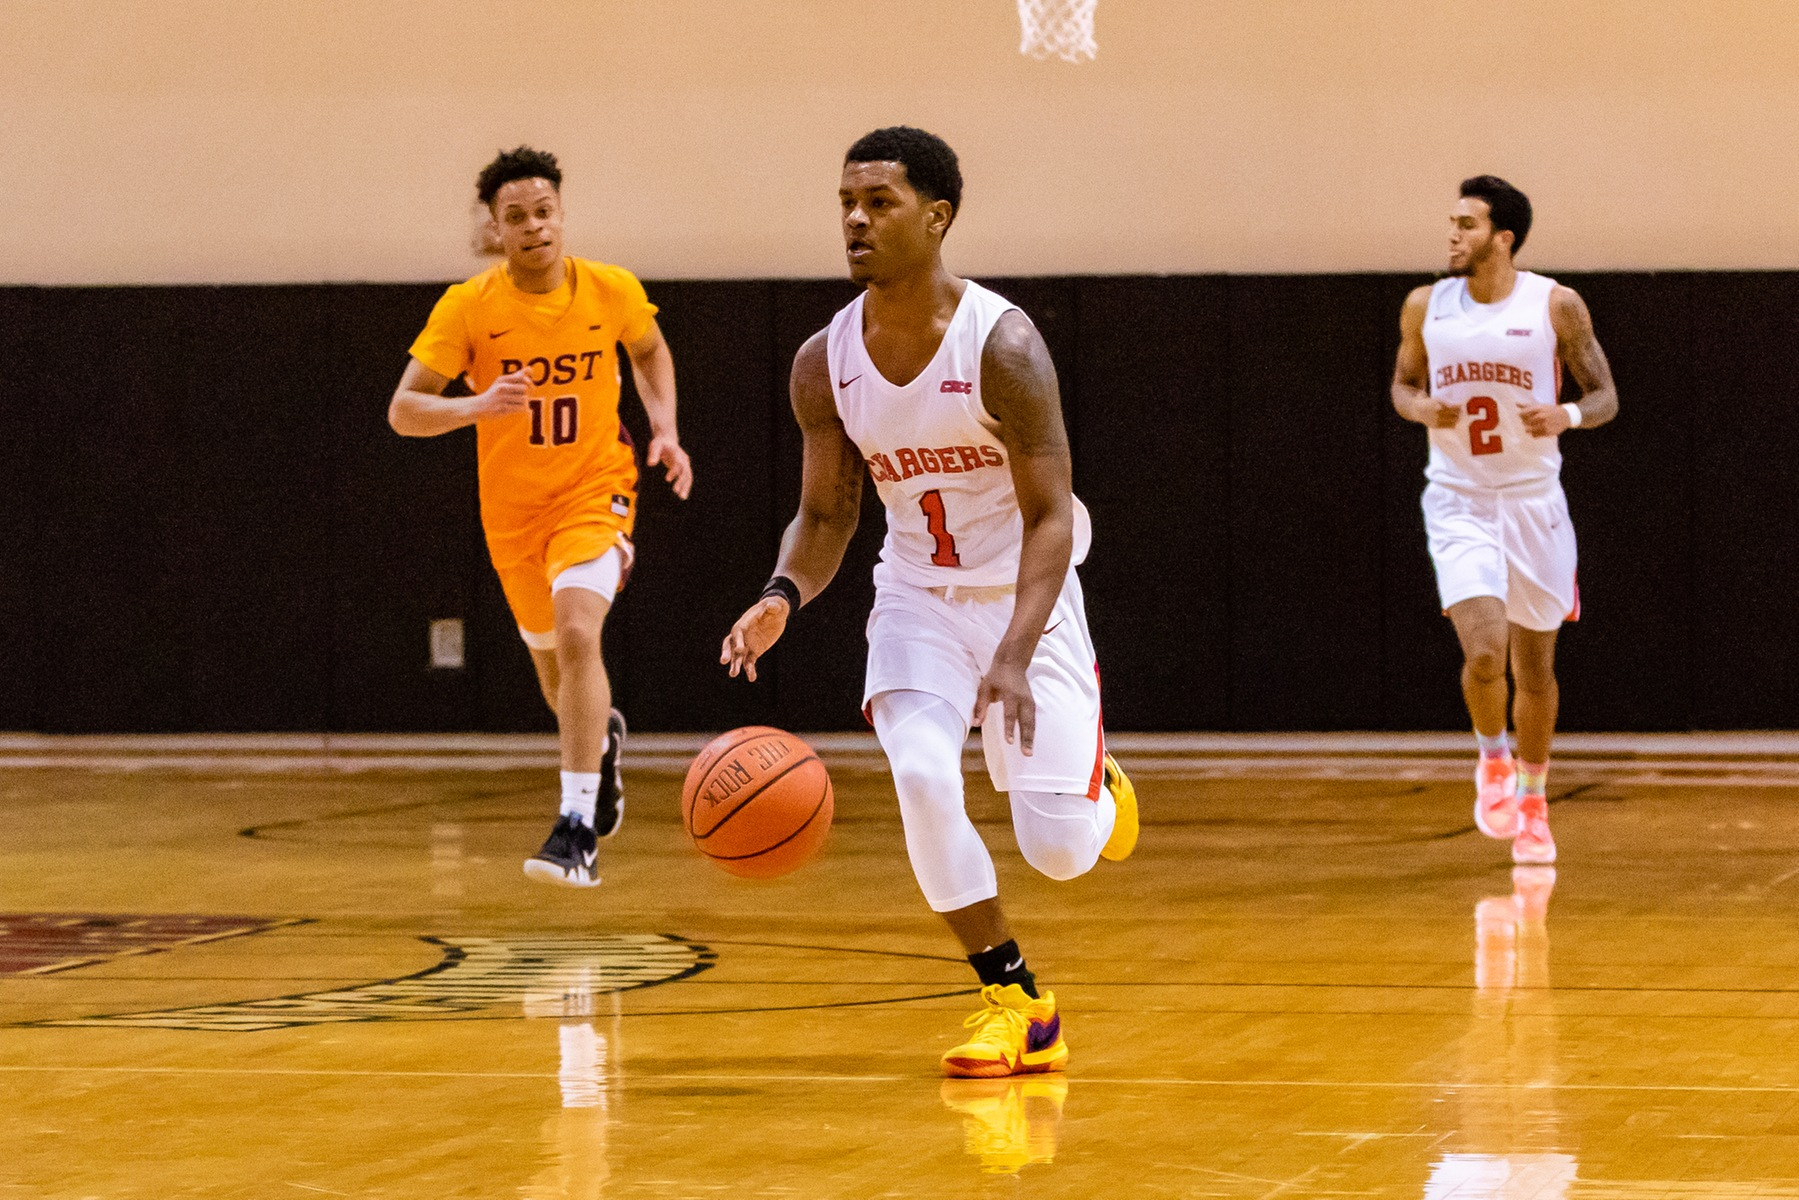 DOMINICAN BASKETBALL TOPS UNIVERSITY OF THE SCIENCES